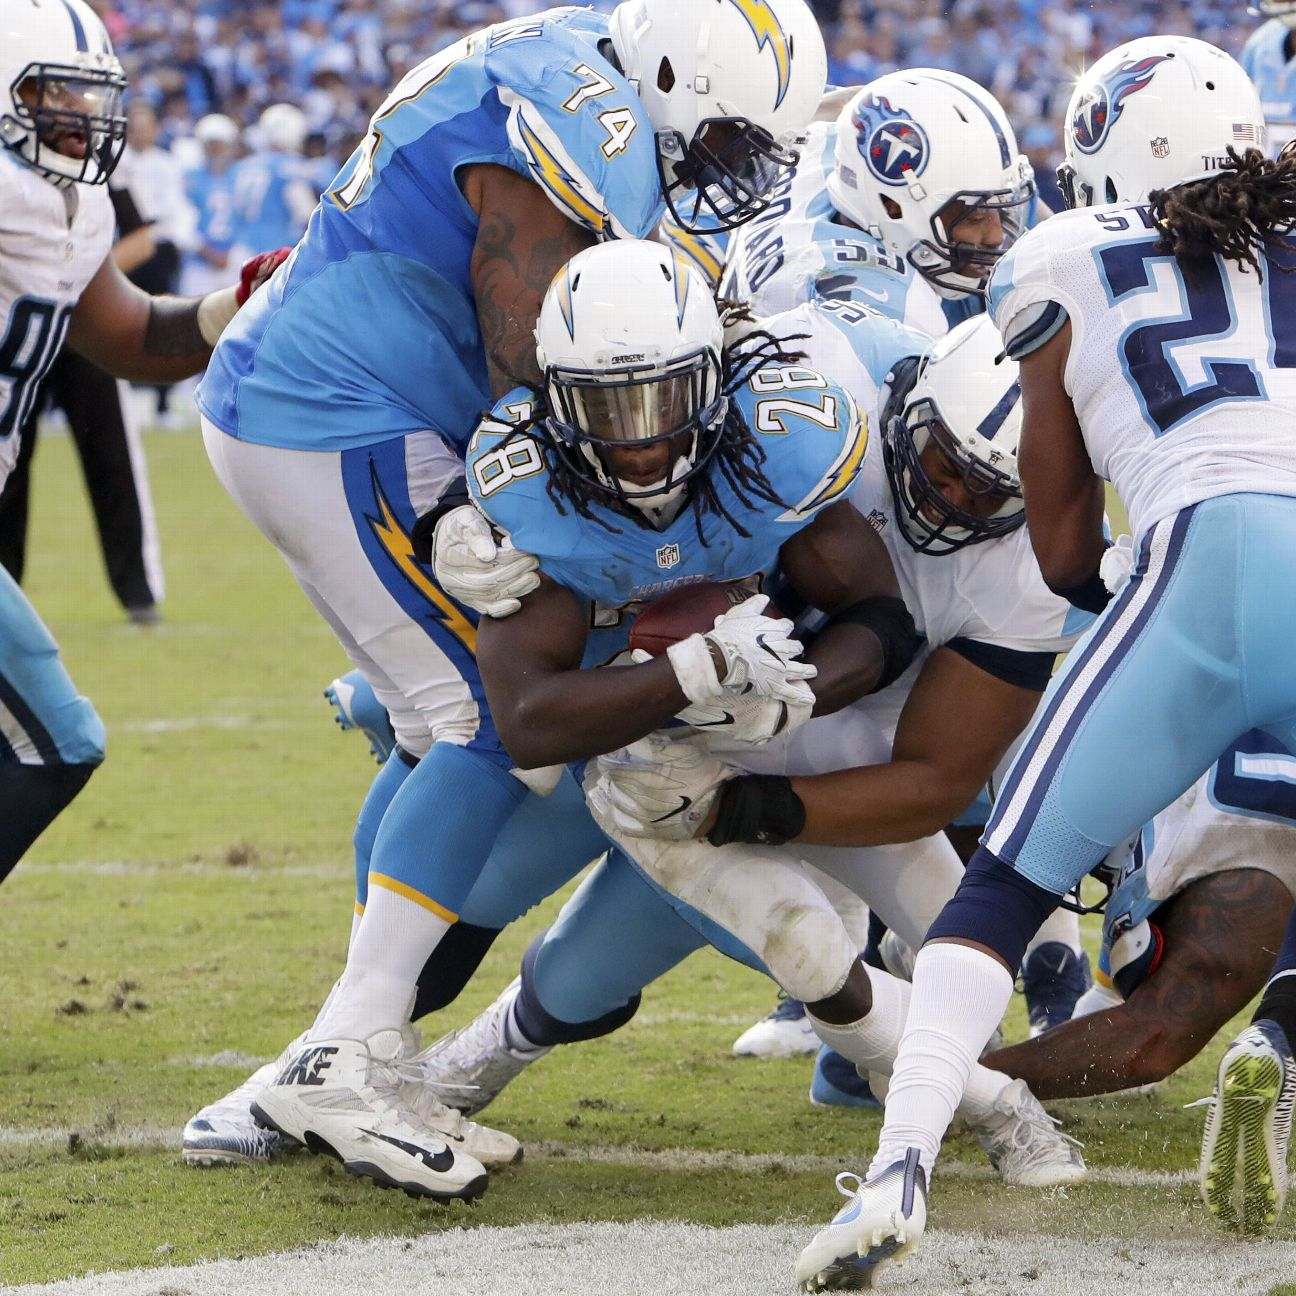 San Diego Chargers Blog: Melvin Gordon, Playmaking Defense Carry Chargers To Win